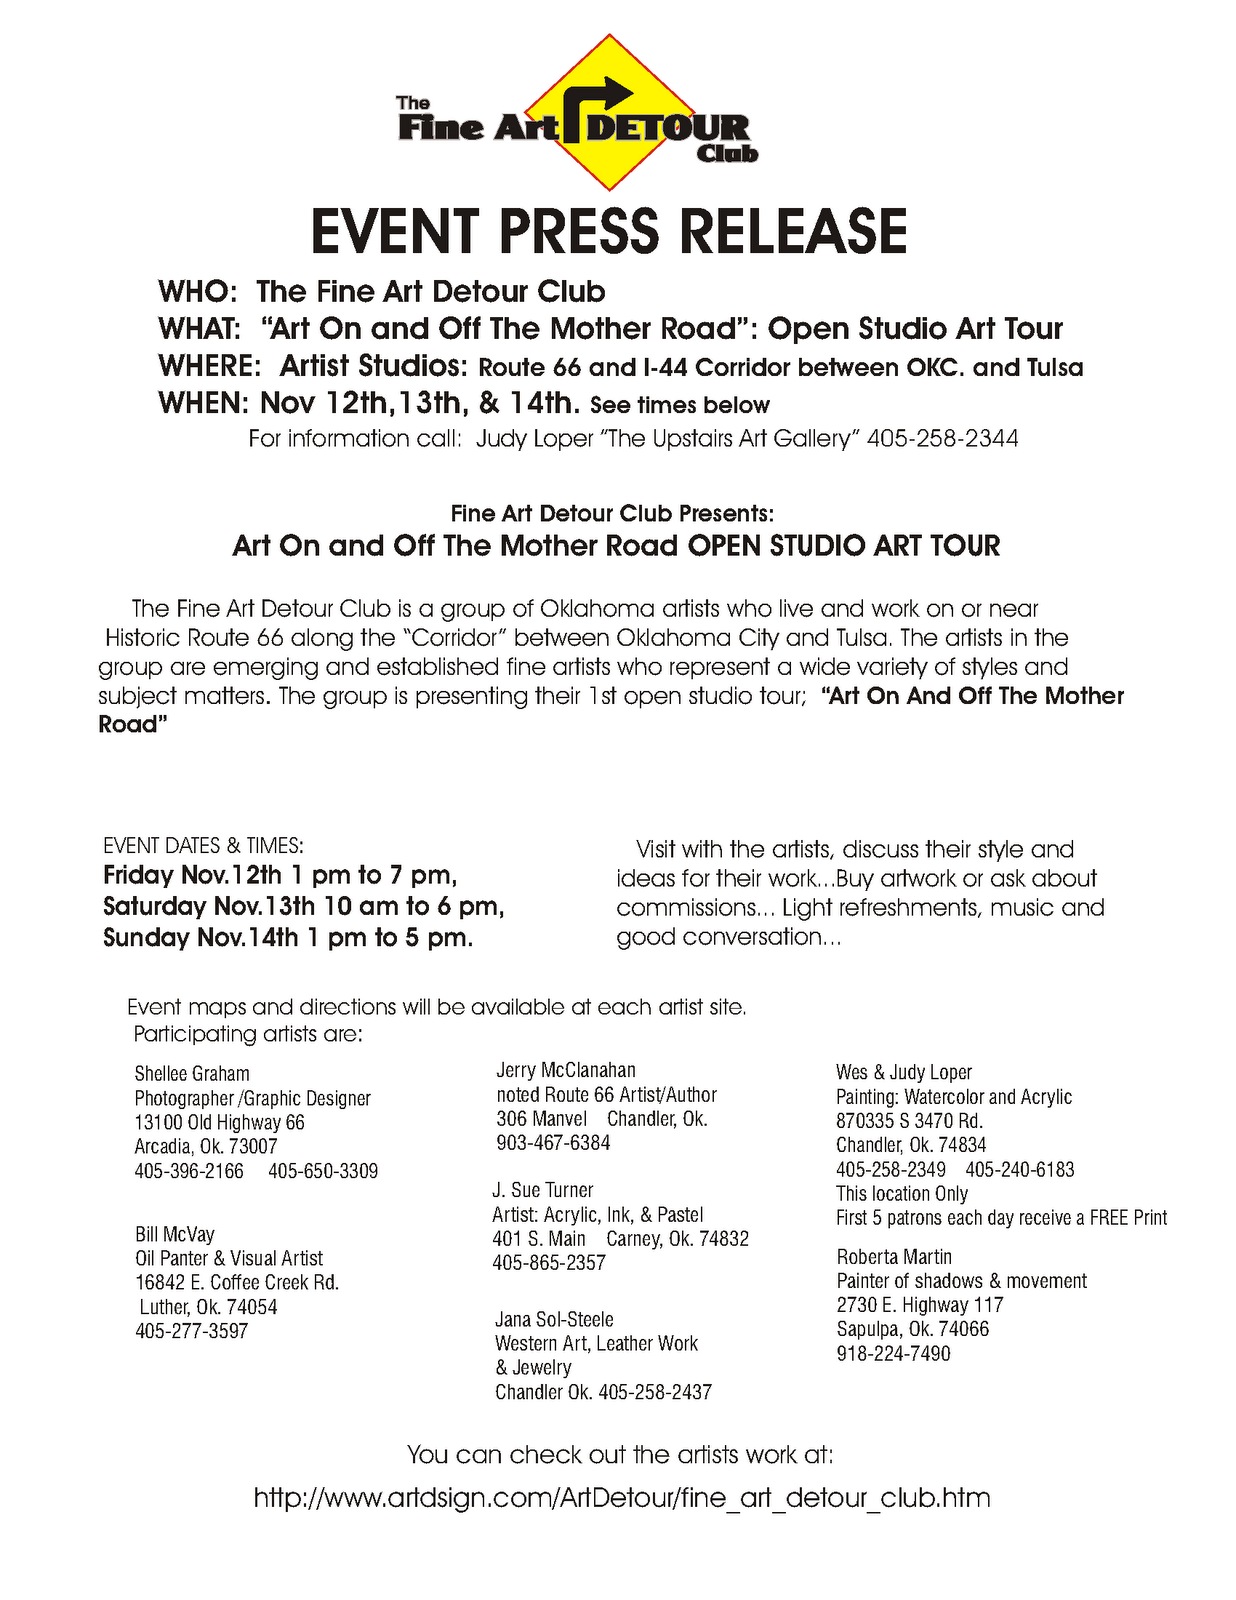 how to write a press release for an event template - fine art magazine blog october 2010